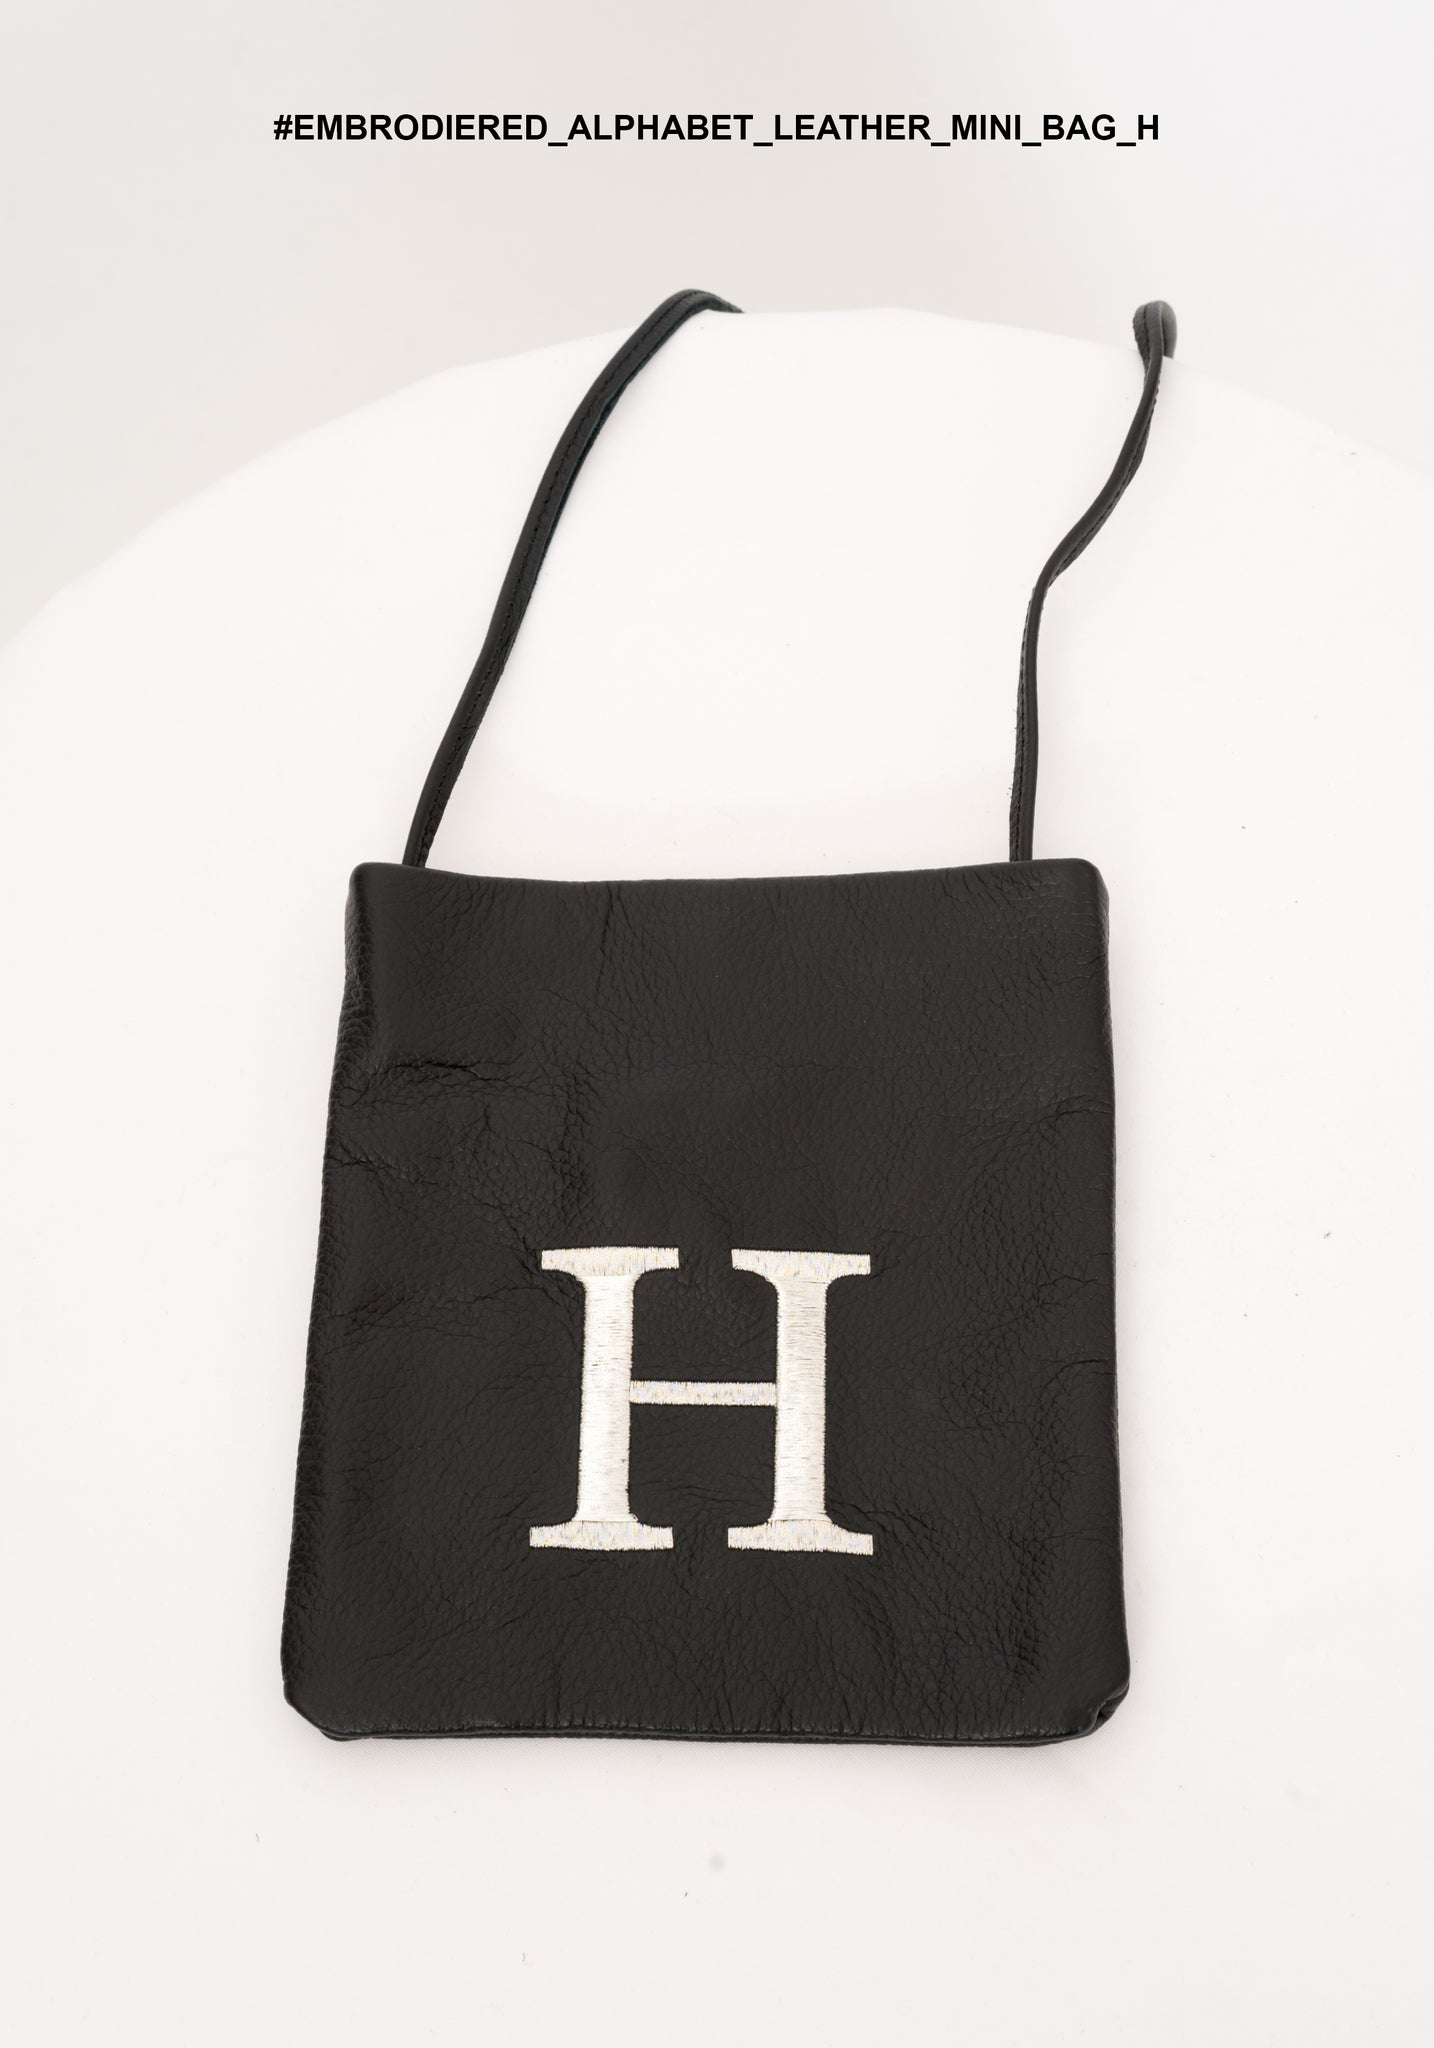 Embroidered Alphabet Leather Mini Bag H - whoami